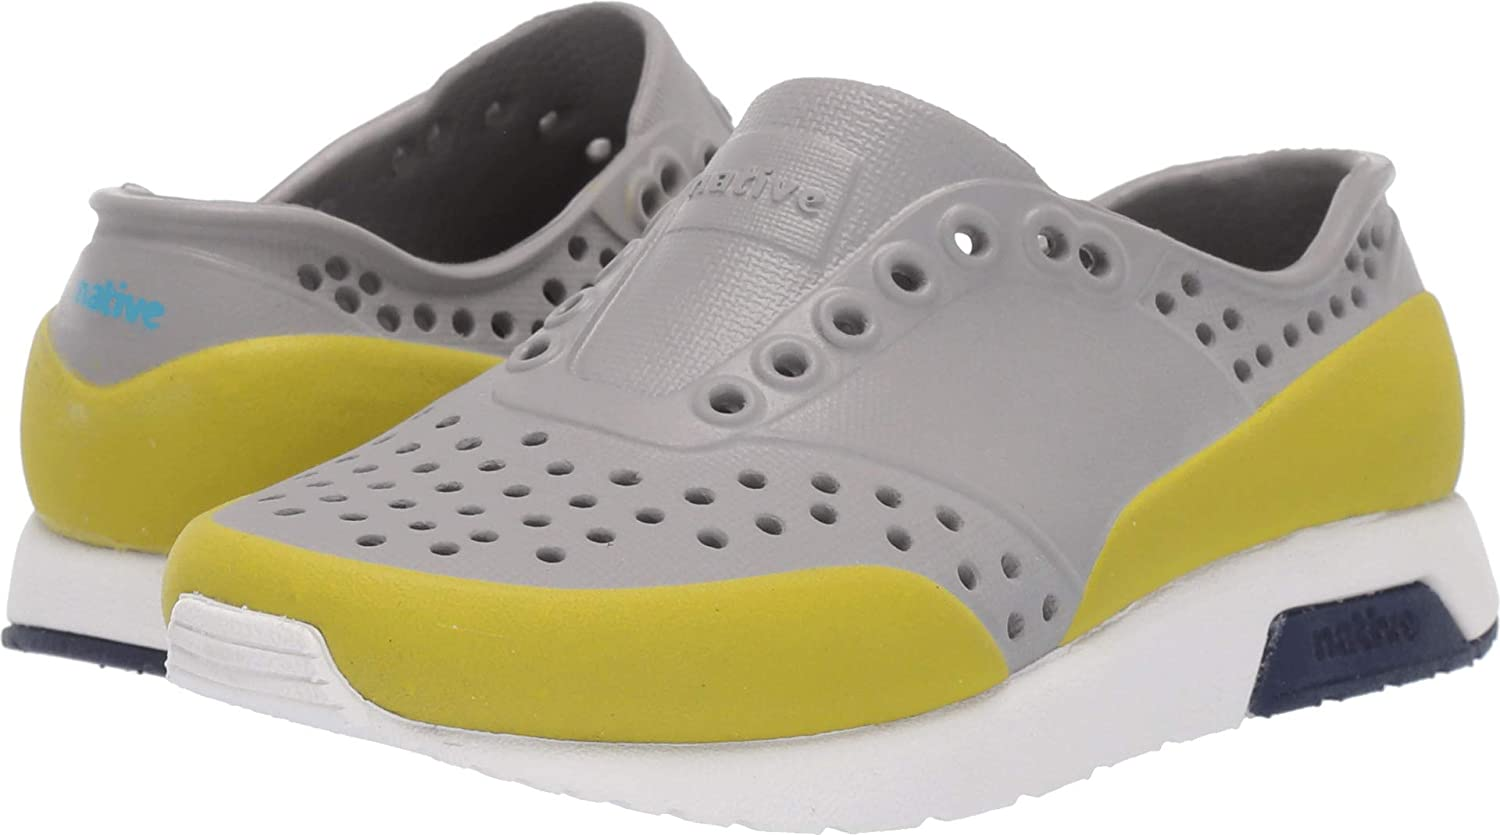 Native Kids Shoes Unisex Lennox Color Block Pigeon Grey//Shell White//Regatta Blue//Glo Green Glow Block 9 M US Toddler Toddler//Little Kid